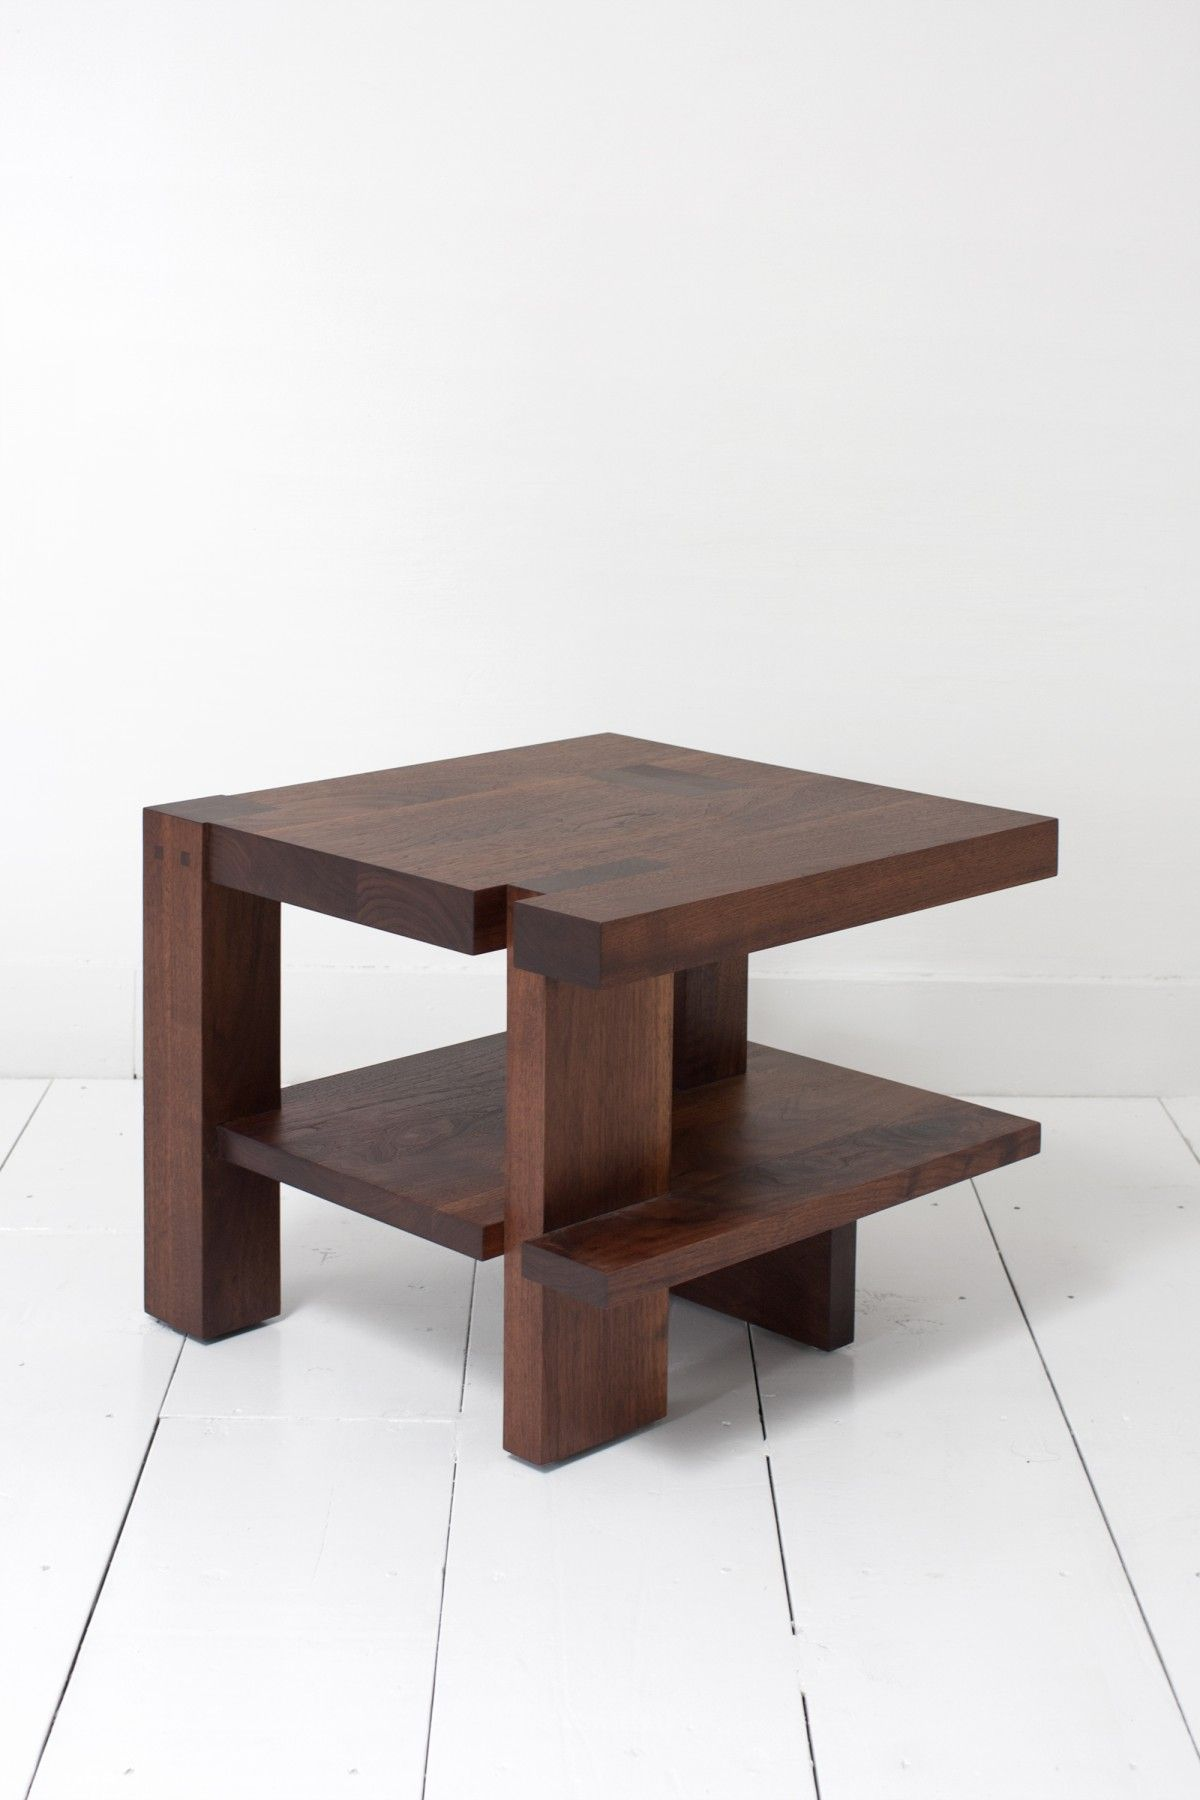 FURNITURE LEAF SIDE TABLE BDDW